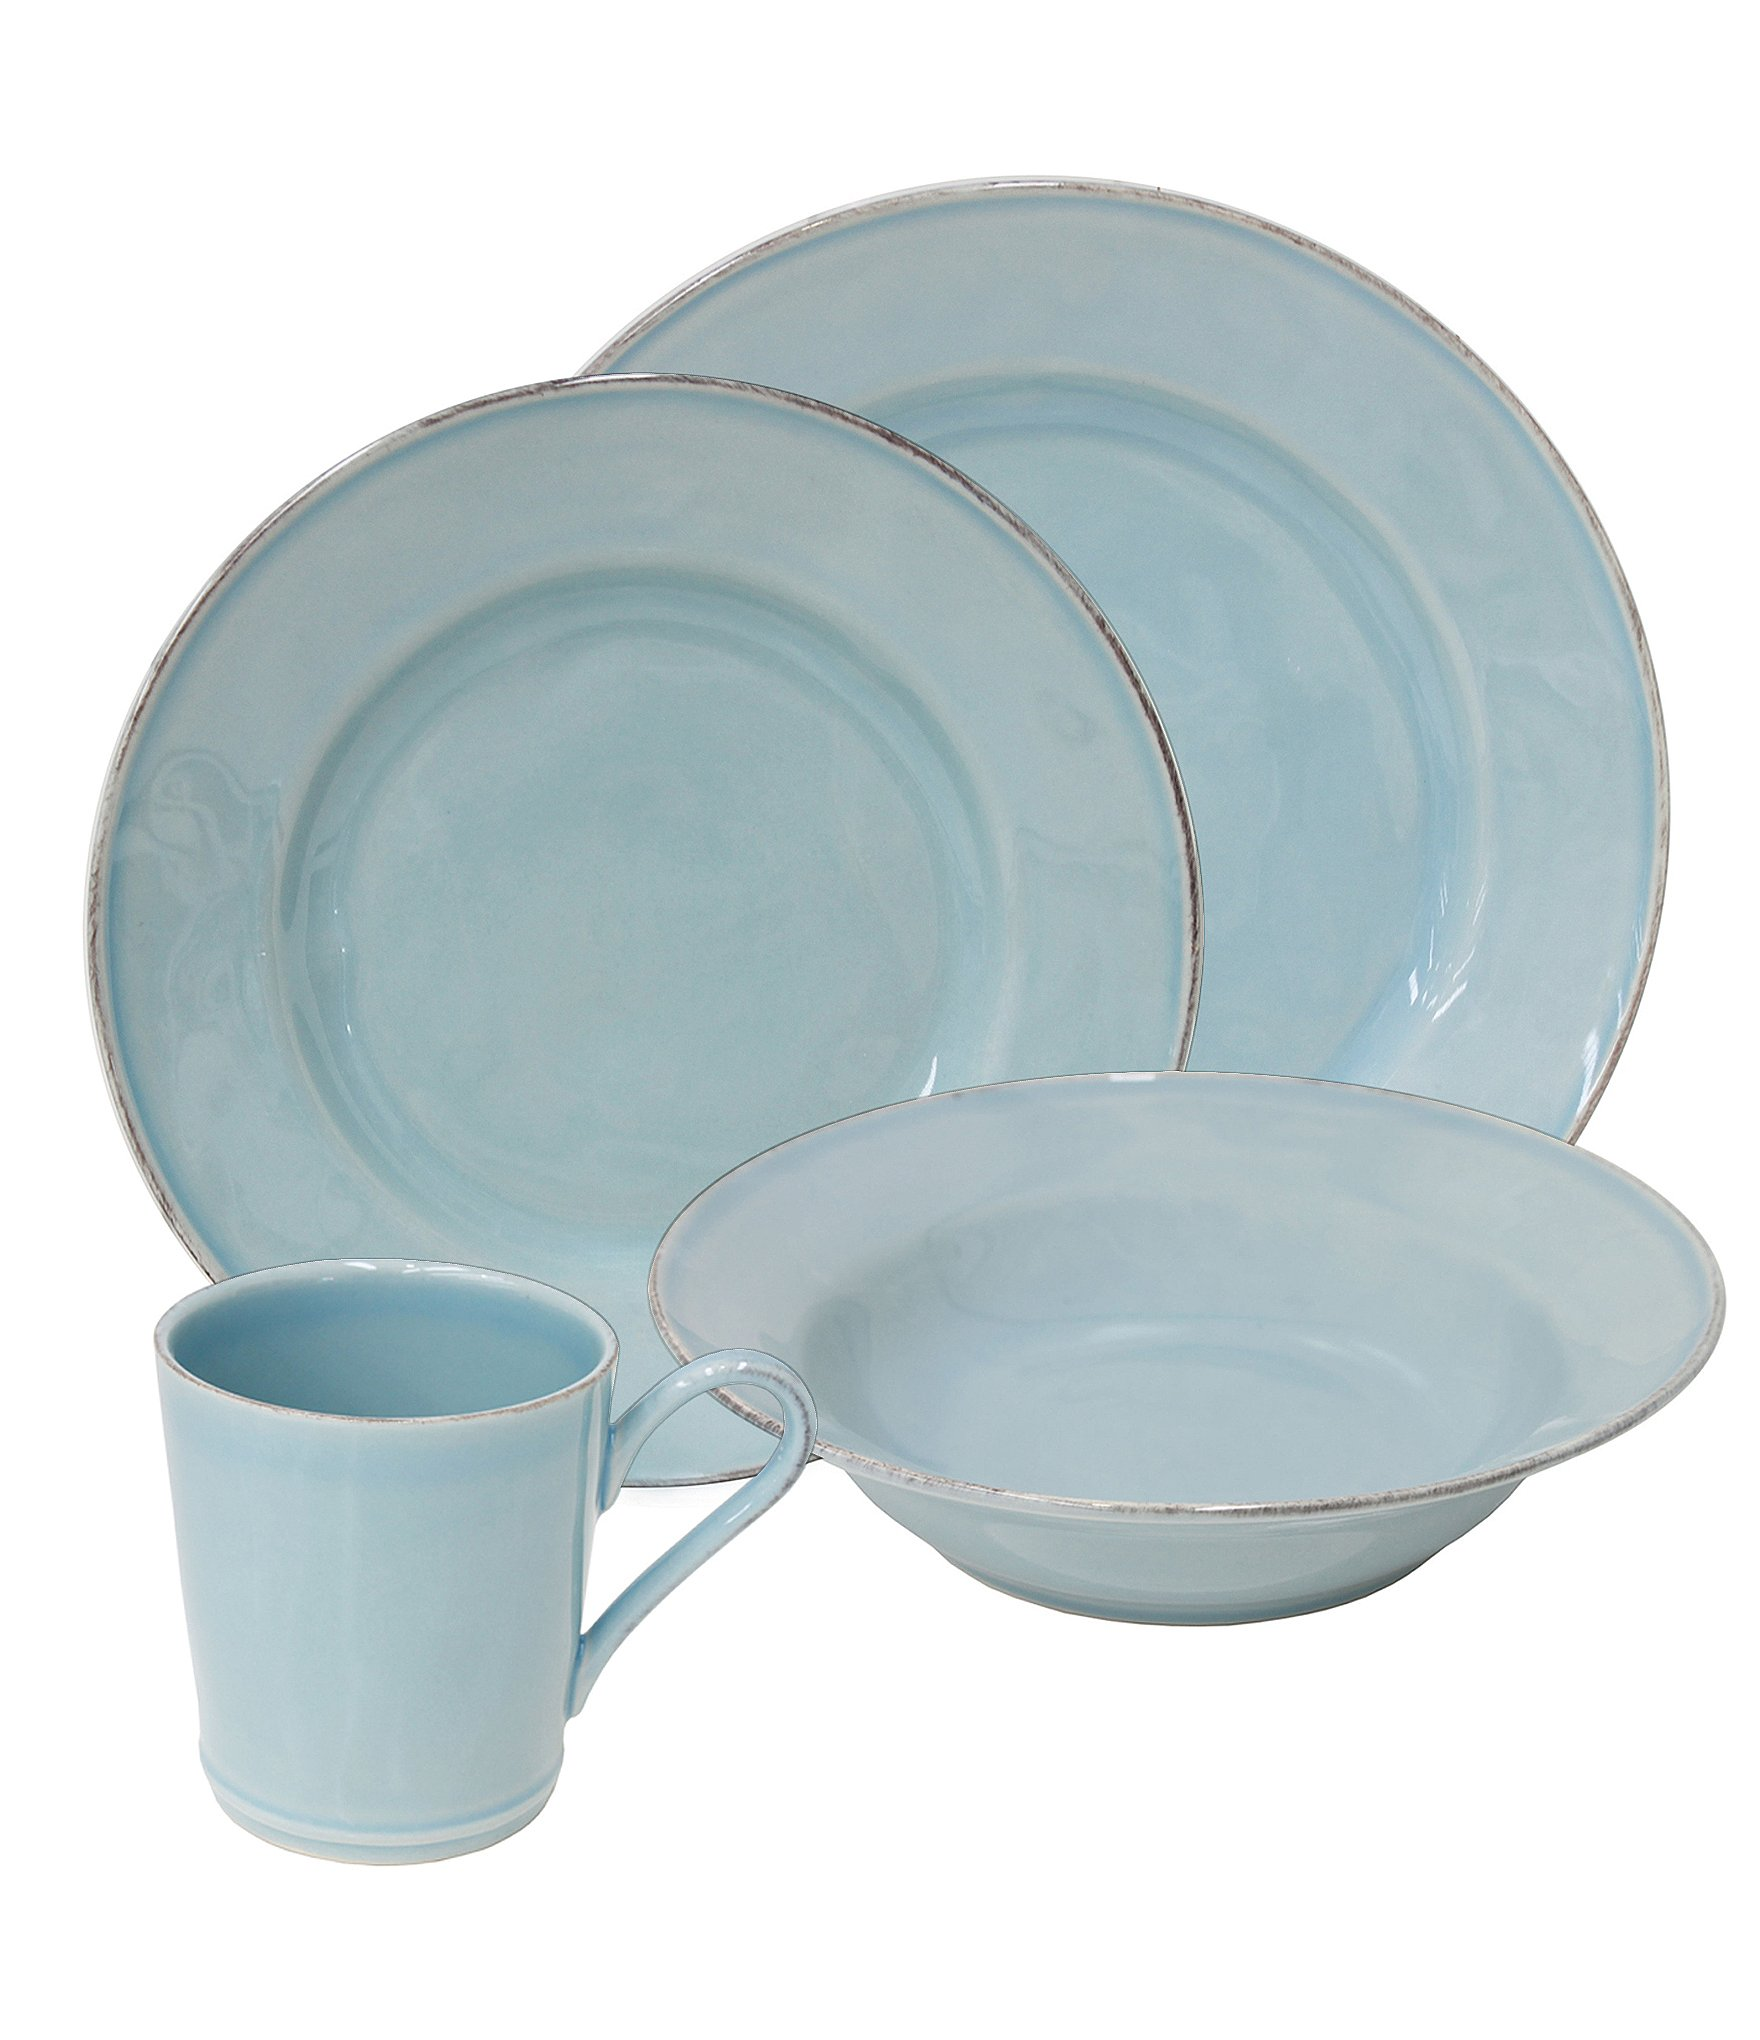 Casual Everyday Dinnerware: Plates , Dishes & Sets | Dillards